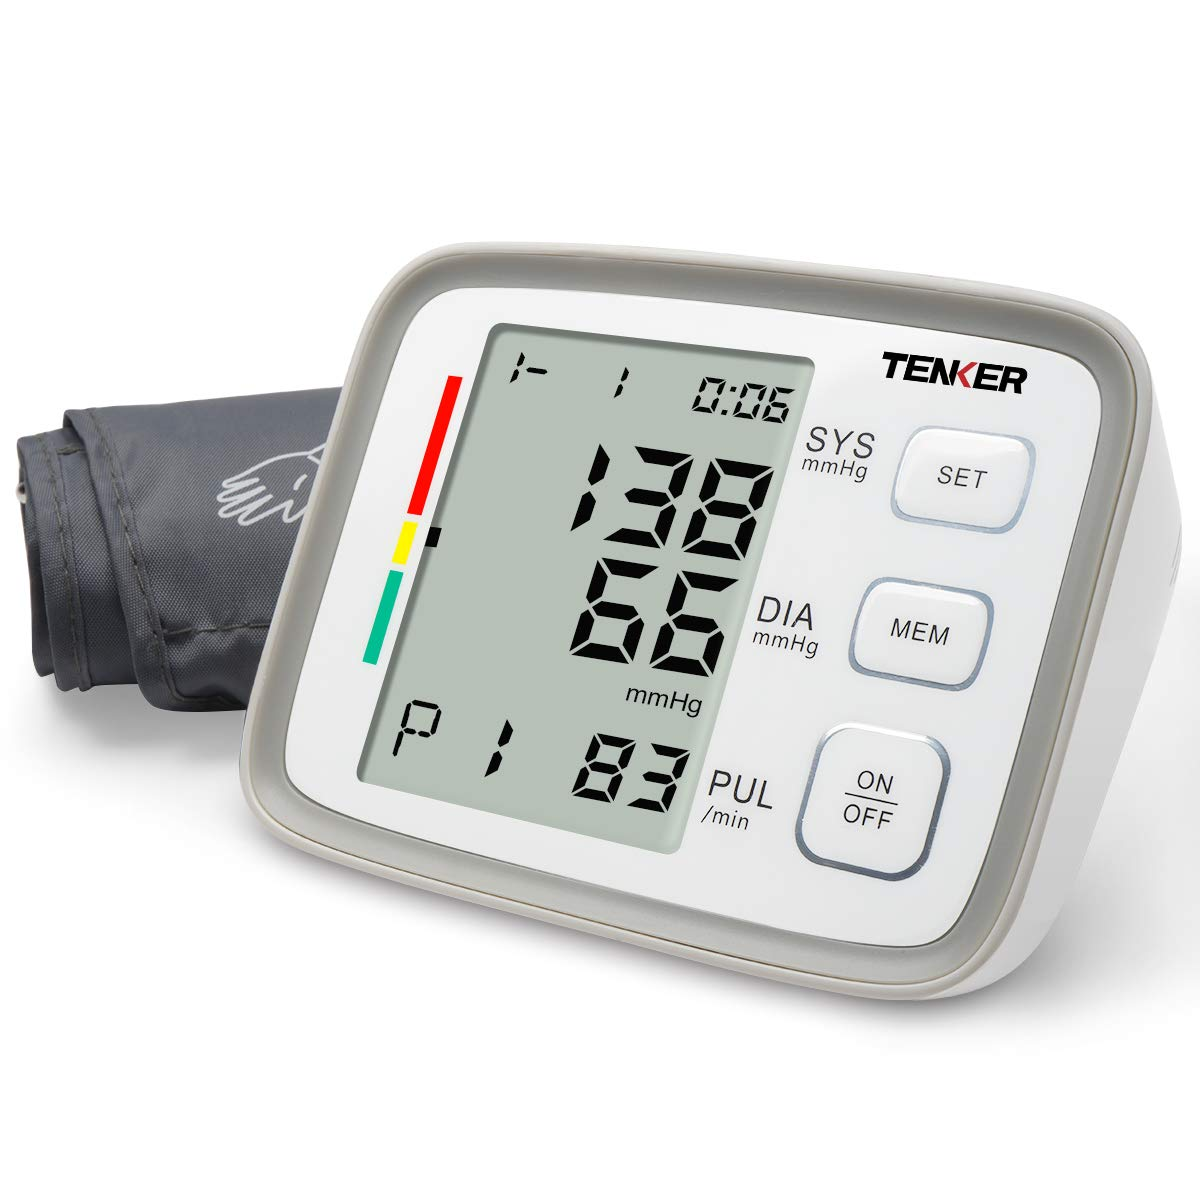 TENKER Blood Pressure Monitor Upper Arm,Home Digital Blood Pressure Machine Kit with Large Cuff - 2 Users 180 Storage,FDA Certified by TENKER